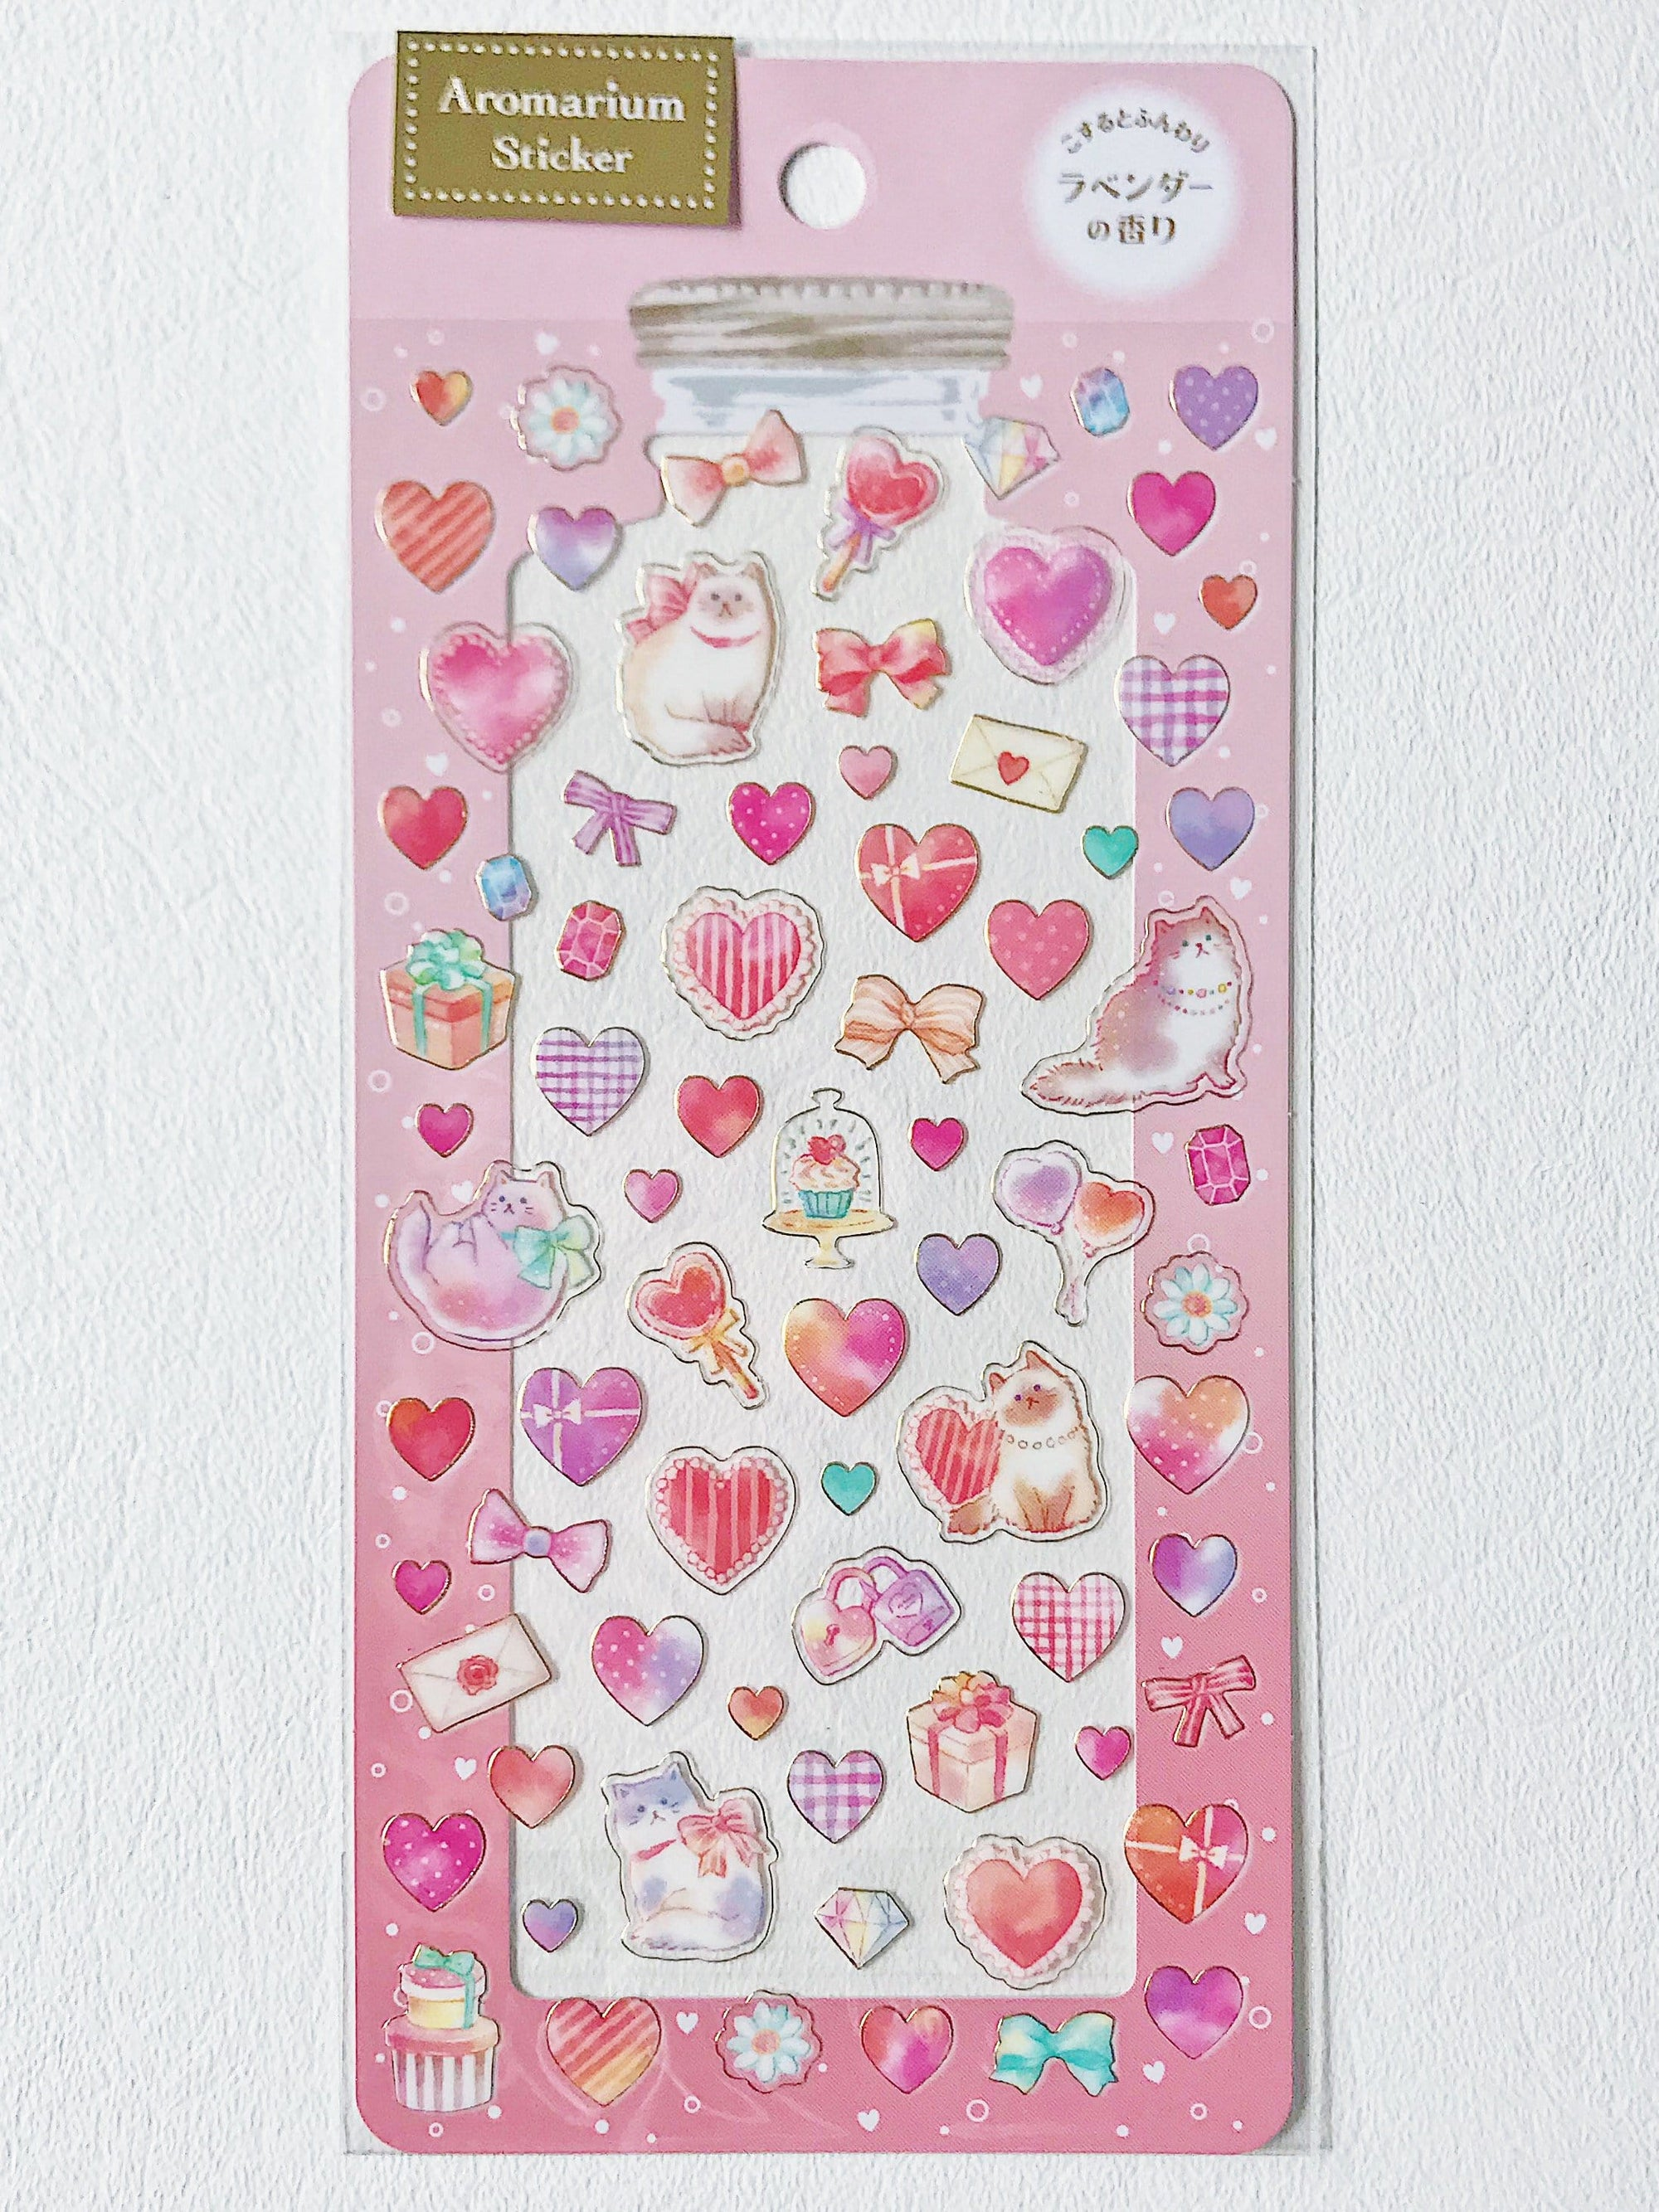 Scented Aromarium Clear Stickers- Pretty Hearts Theme, Lavender Scent